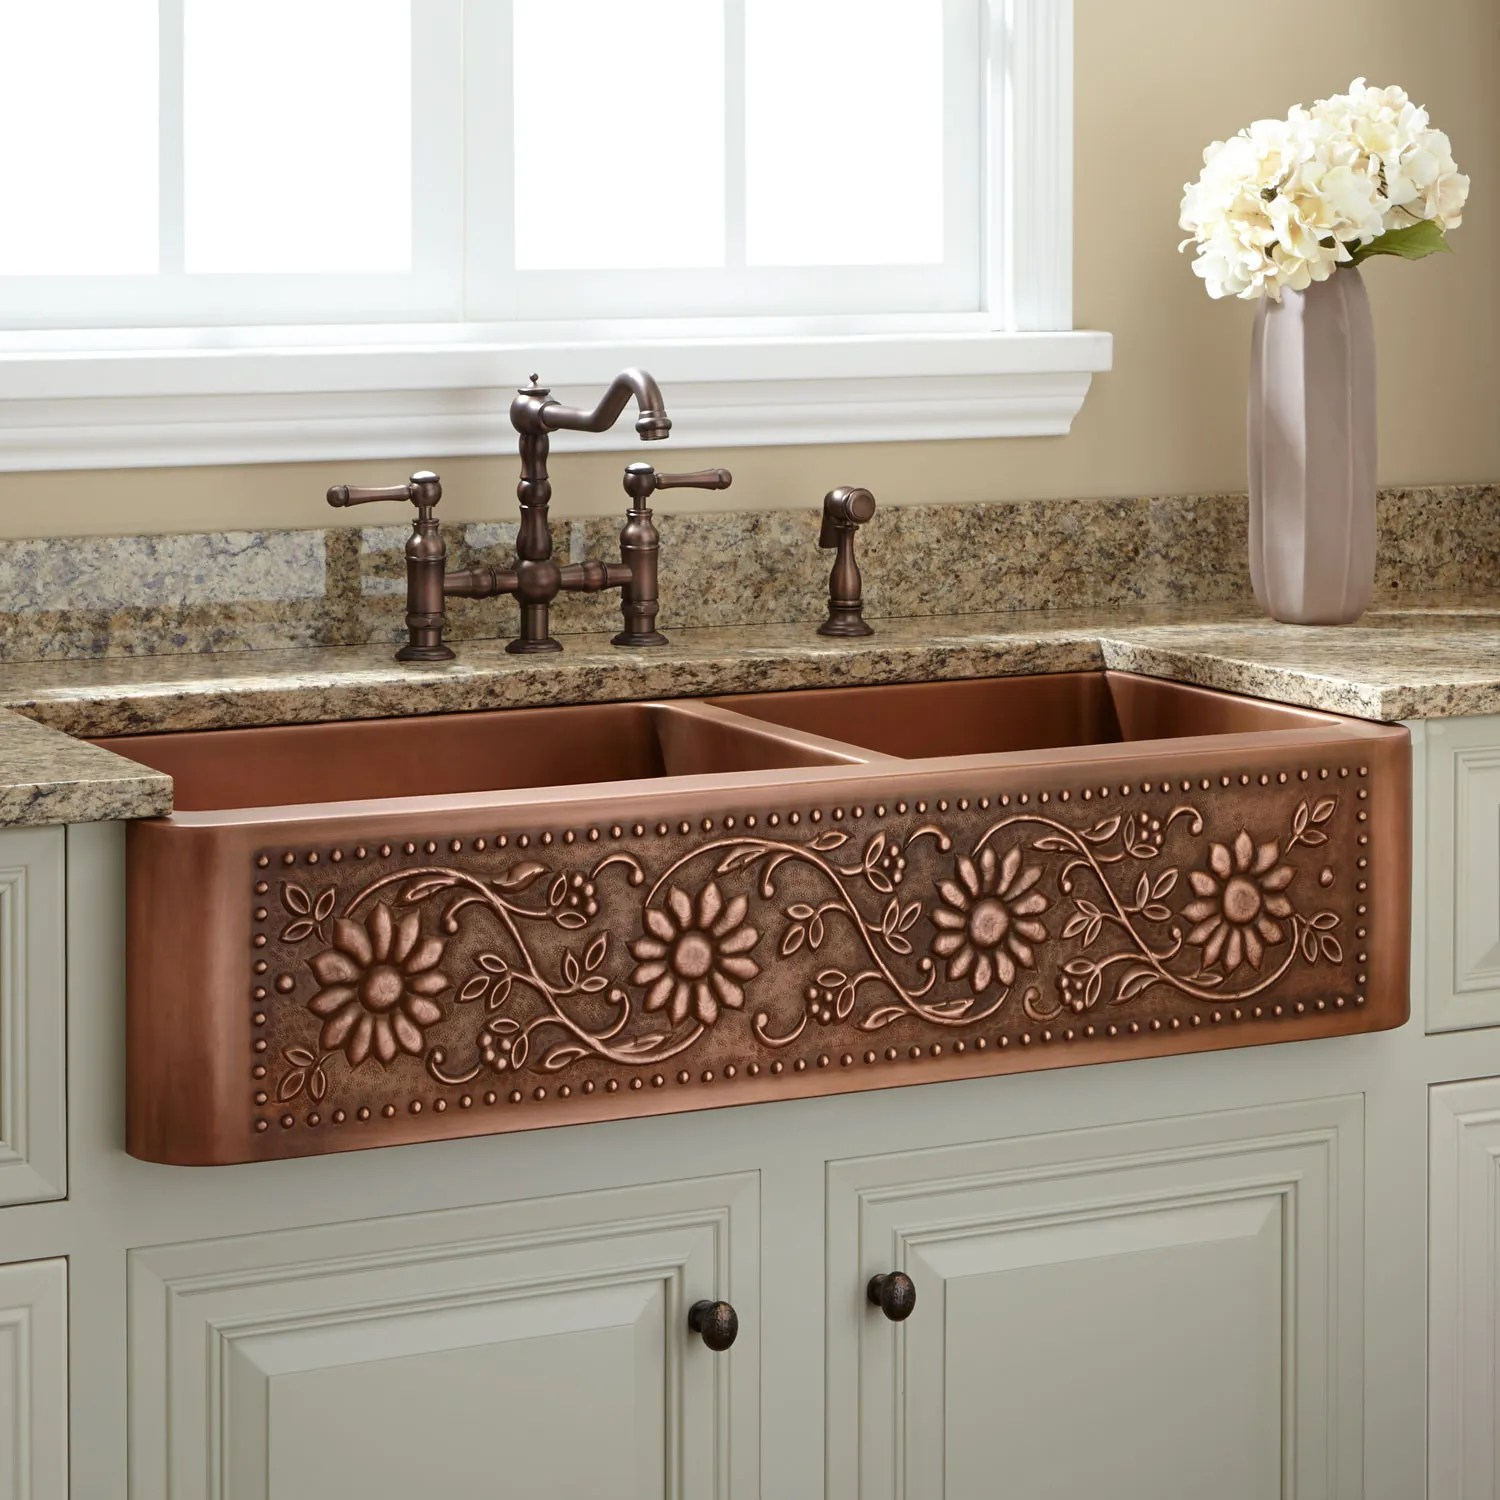 copper kitchen sinks farm kitchen sink 42 Sunflower 60 40 Offset Double Bowl Copper Farmhouse Sink